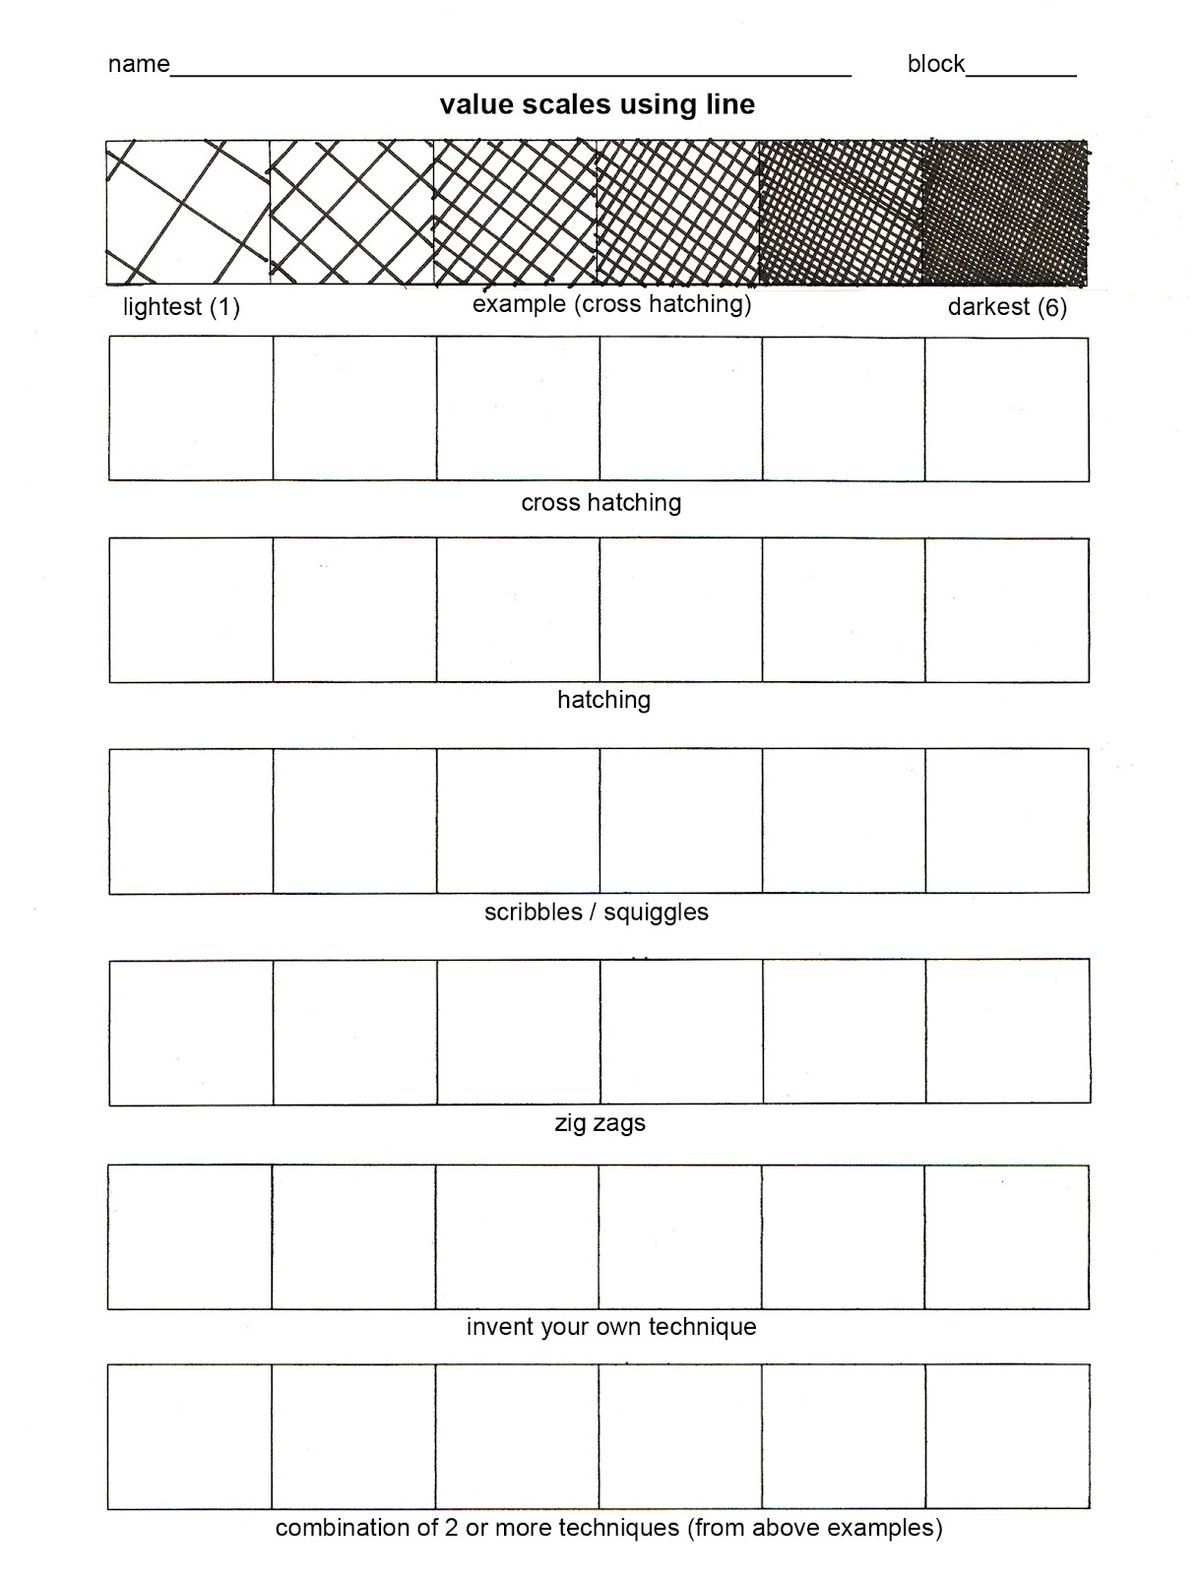 Workbooks squiggle art worksheets : FUN INVENTORS: Optical illusion Drawing on lined paper! | Step #1 ...